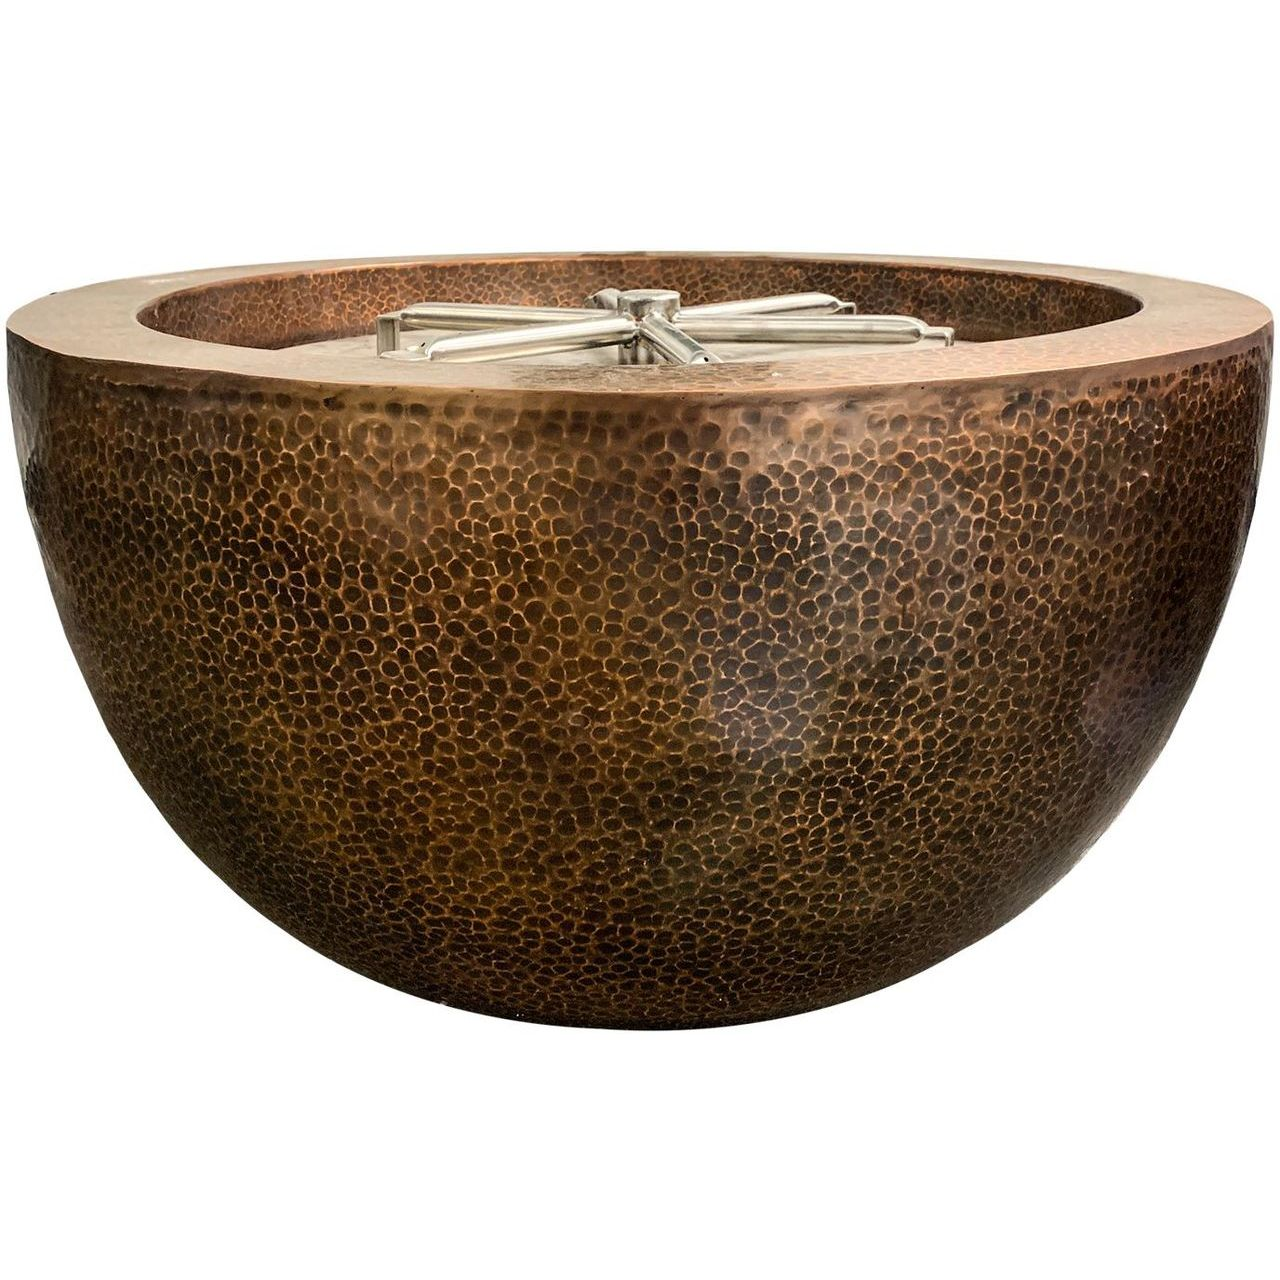 Prism Hardscapes Moderno 3 Fire Bowl in Copper - LP